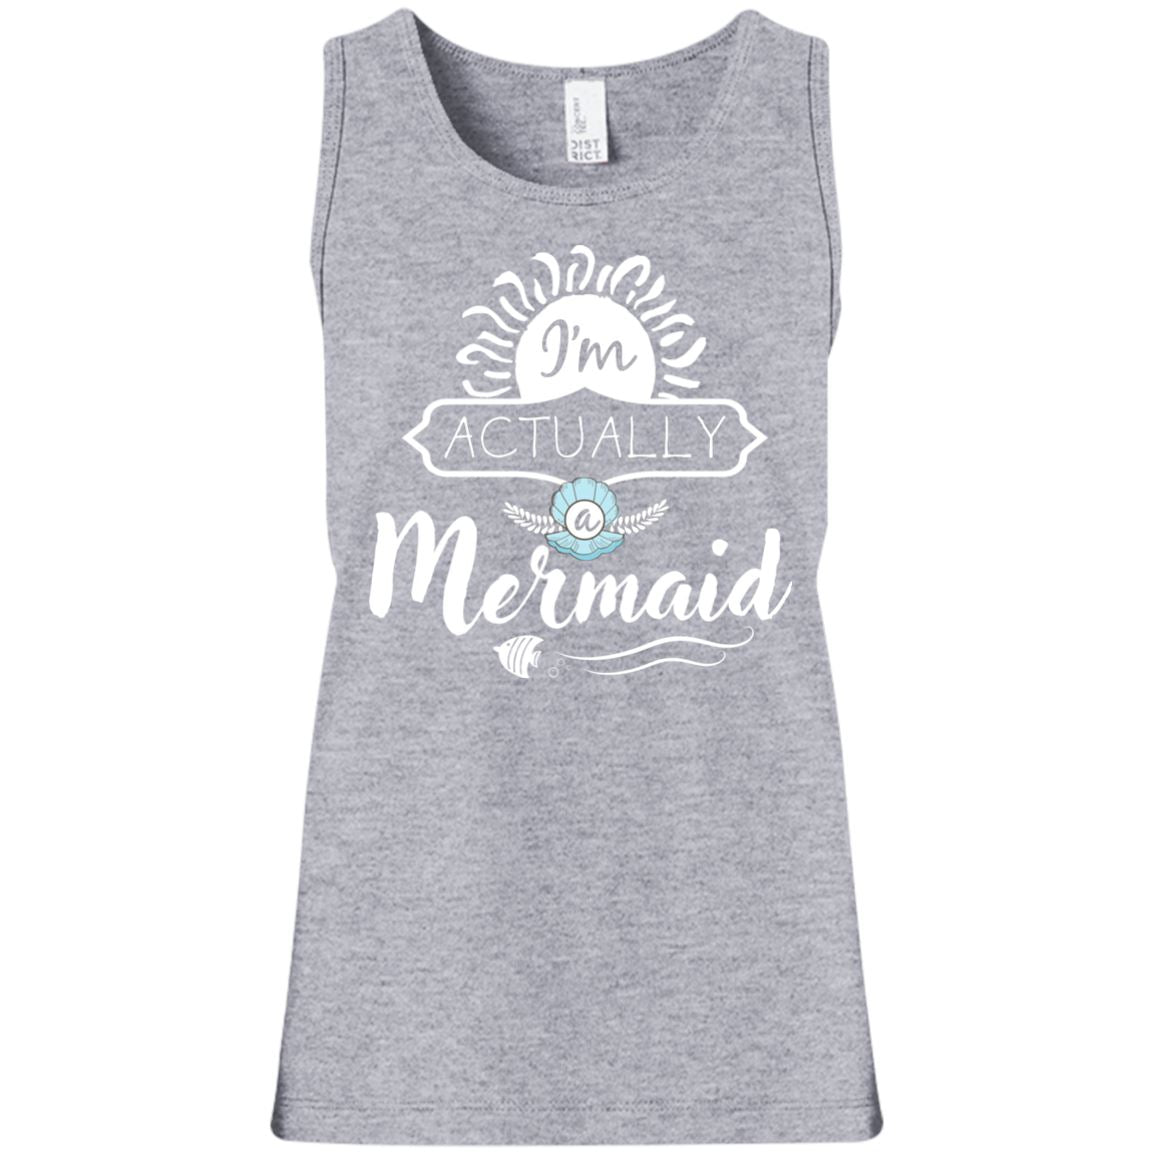 I'm Actually A Mermaid Girls Tank Top Mermaid Apparel Heather Grey YXS